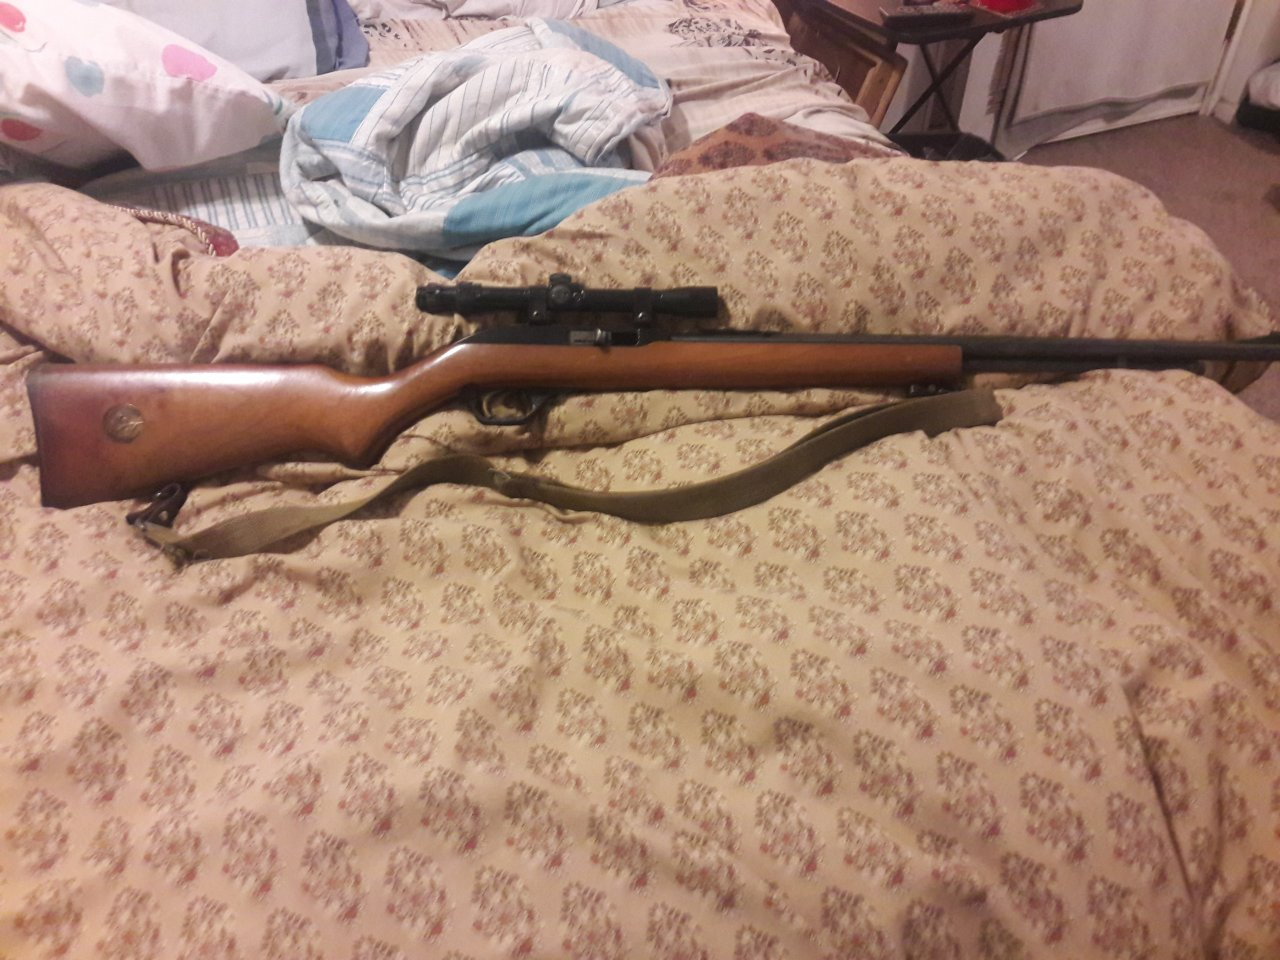 Marlin 22 Model 60w Serial Number 07 3 84454 With A Gold Trigger